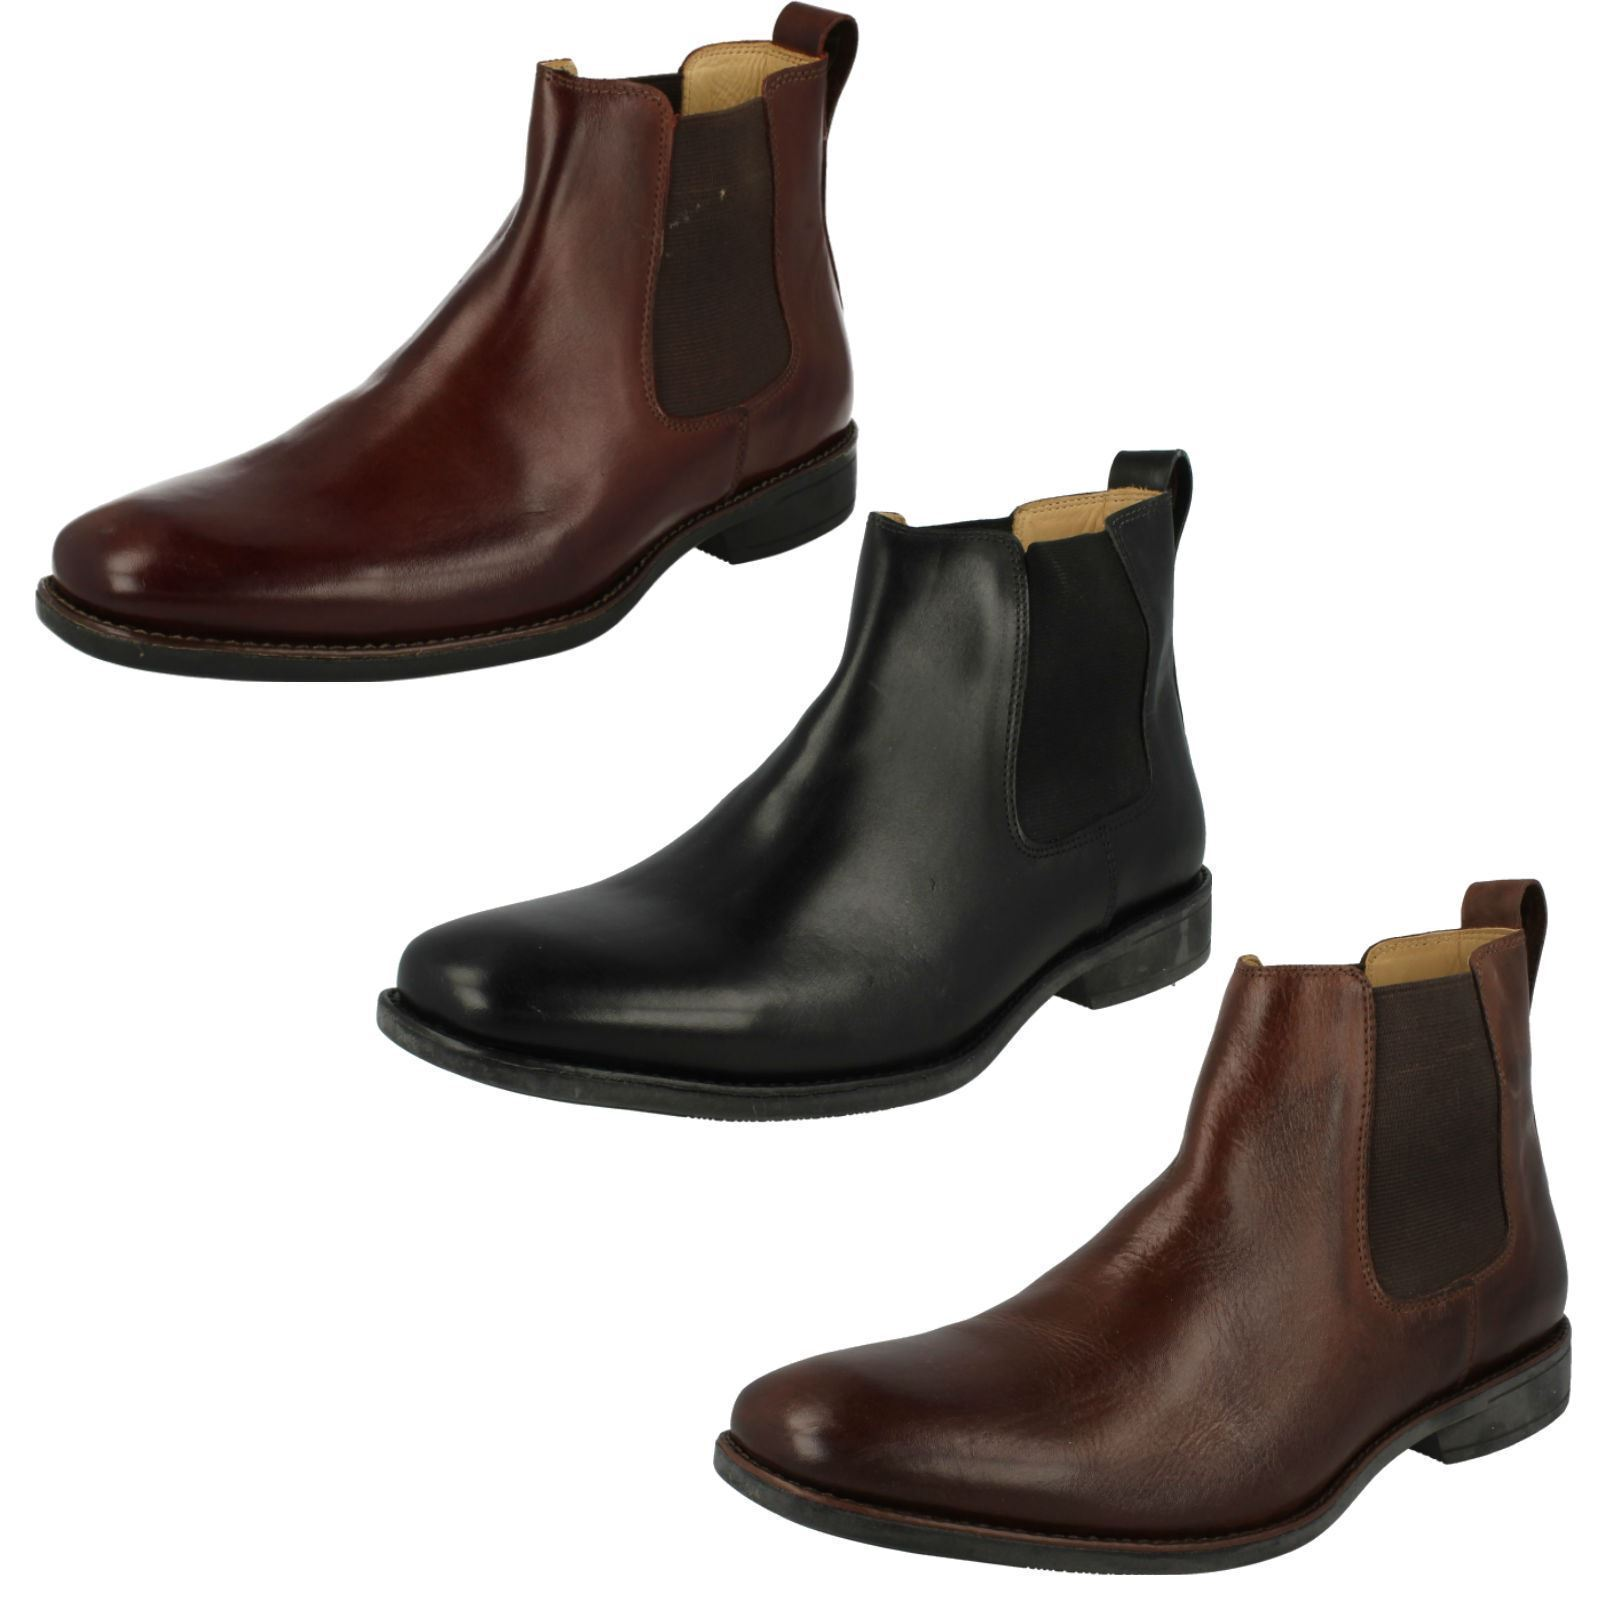 Hombre Anatomic Burgundy/Negro Pull On Colombo Leather Chelsea Ankle botas Colombo On 929211 079b08